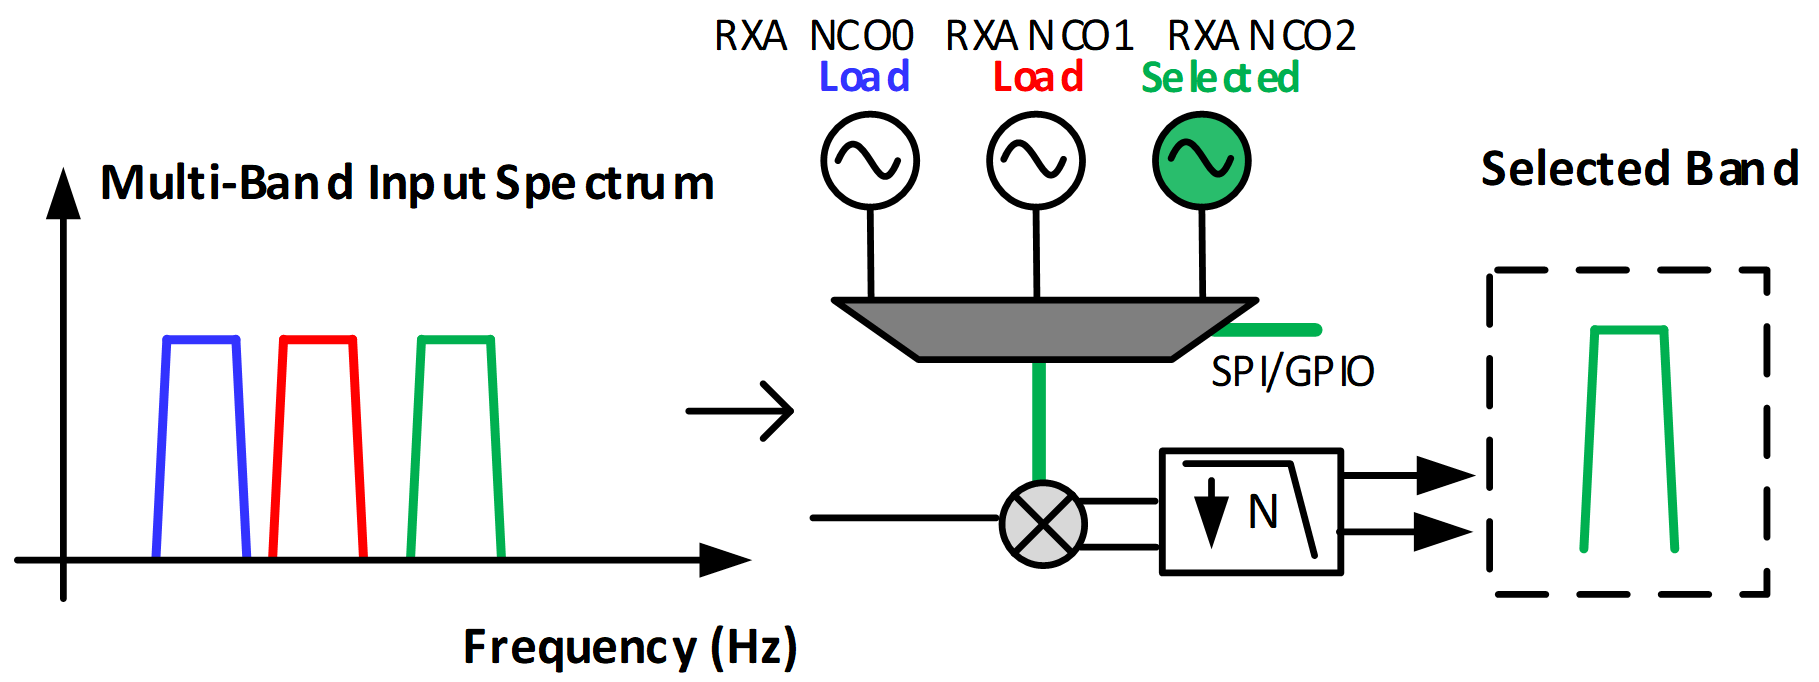 Figure 3: Example of frequency hopping with multiple NCOs